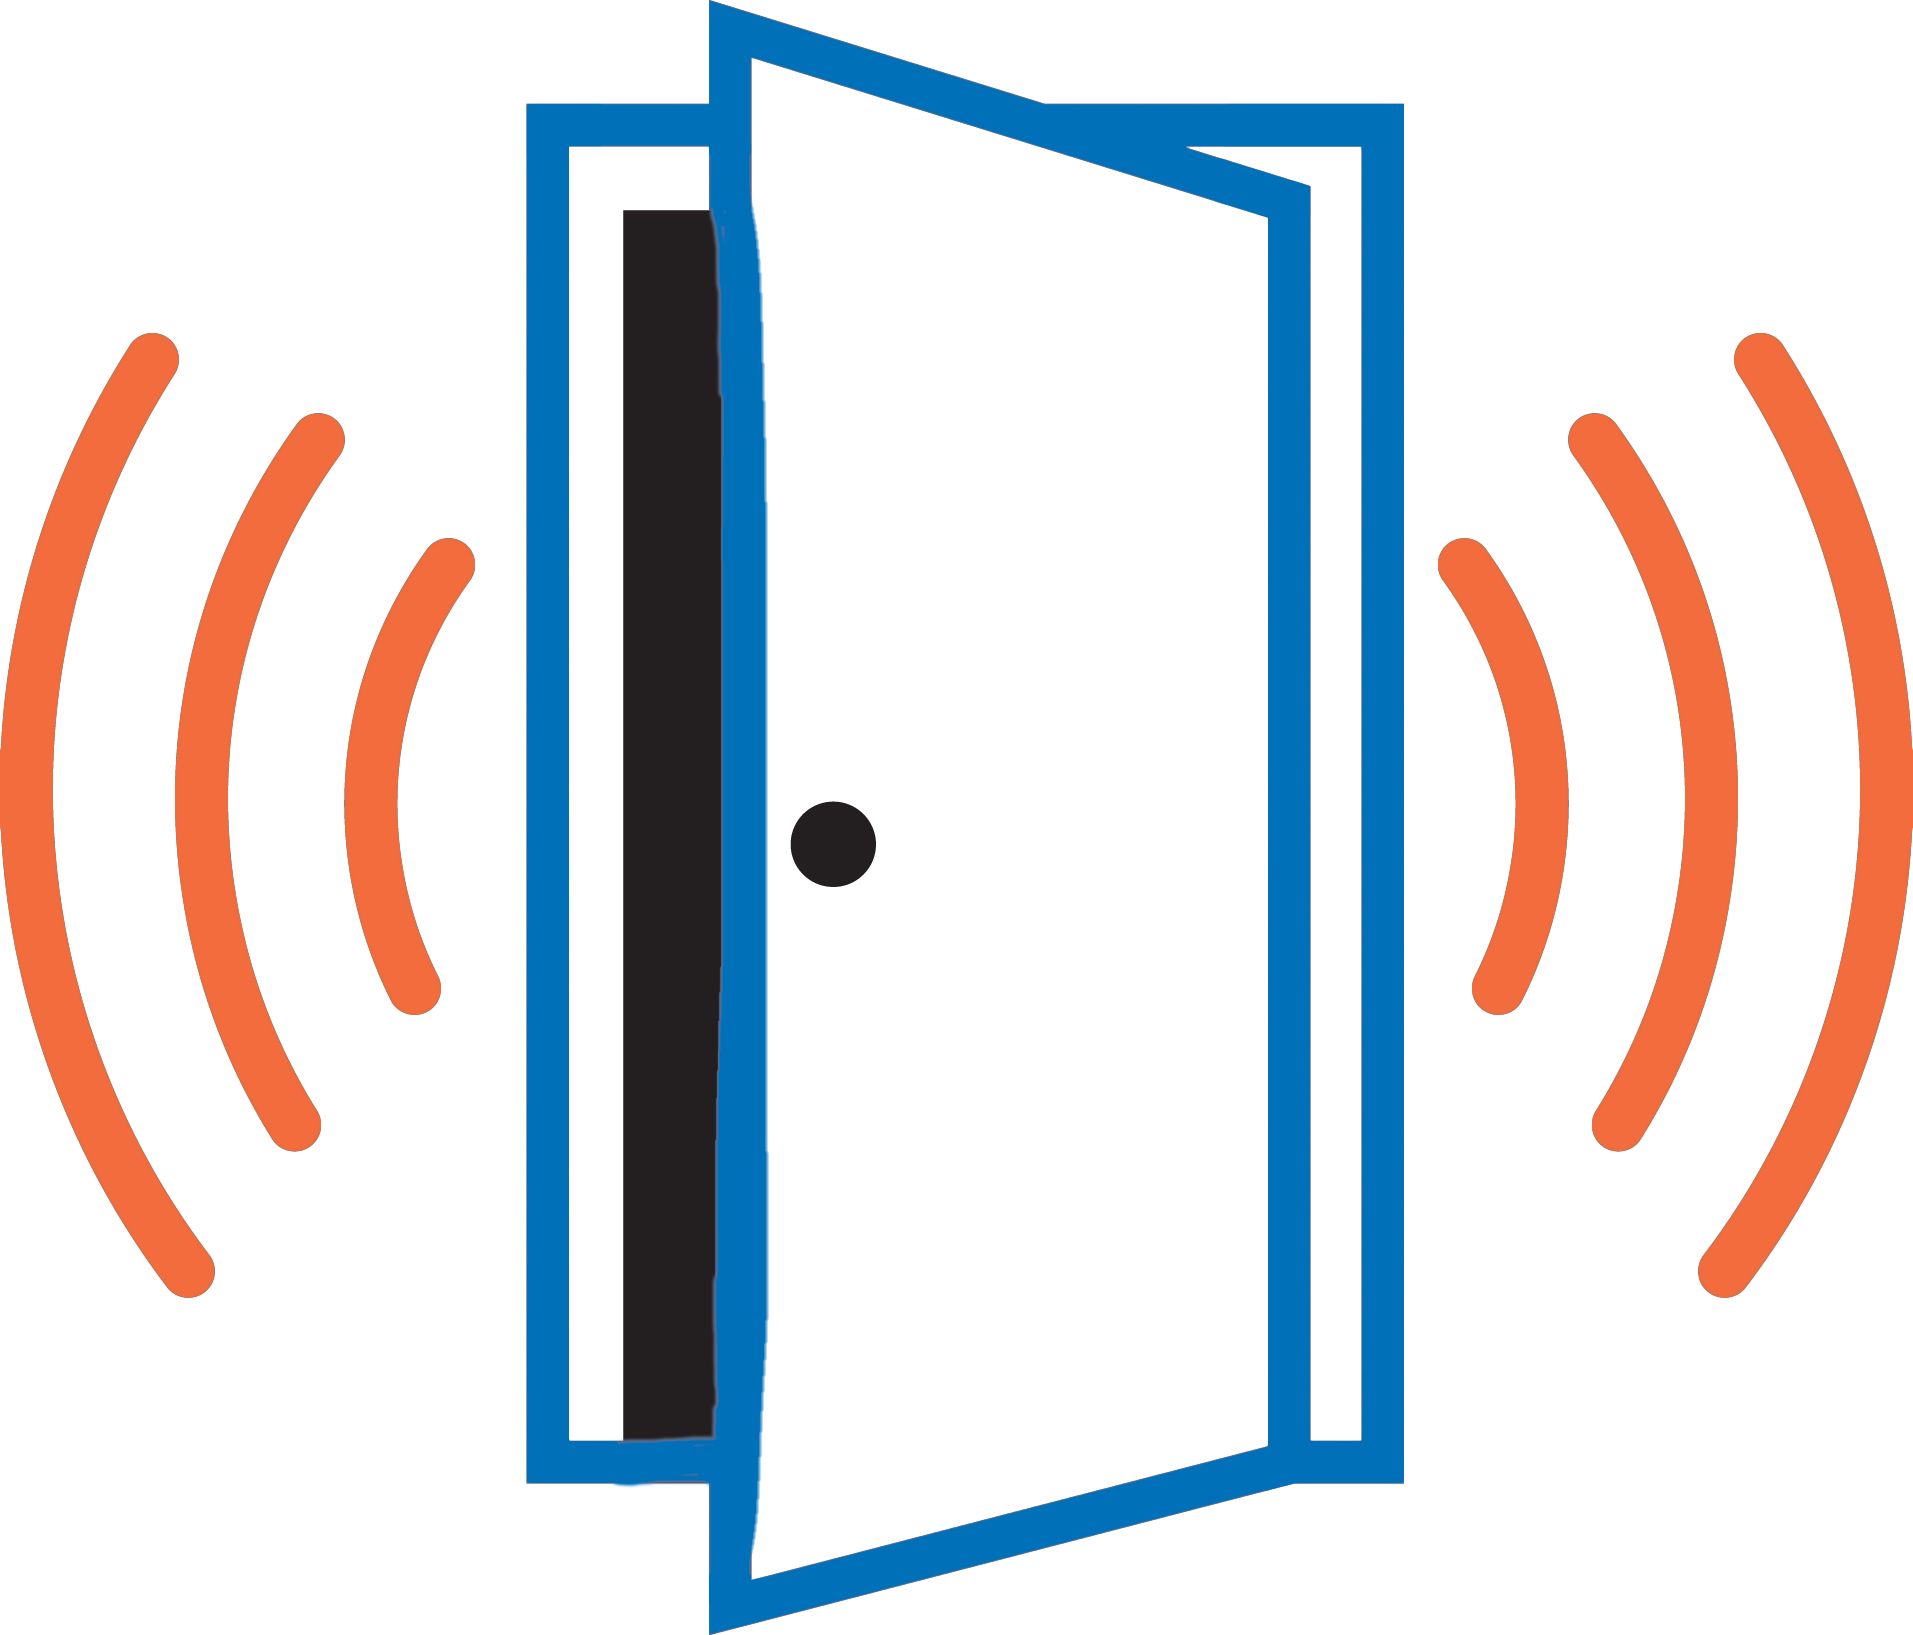 Icon of an open door with alert lines for access control